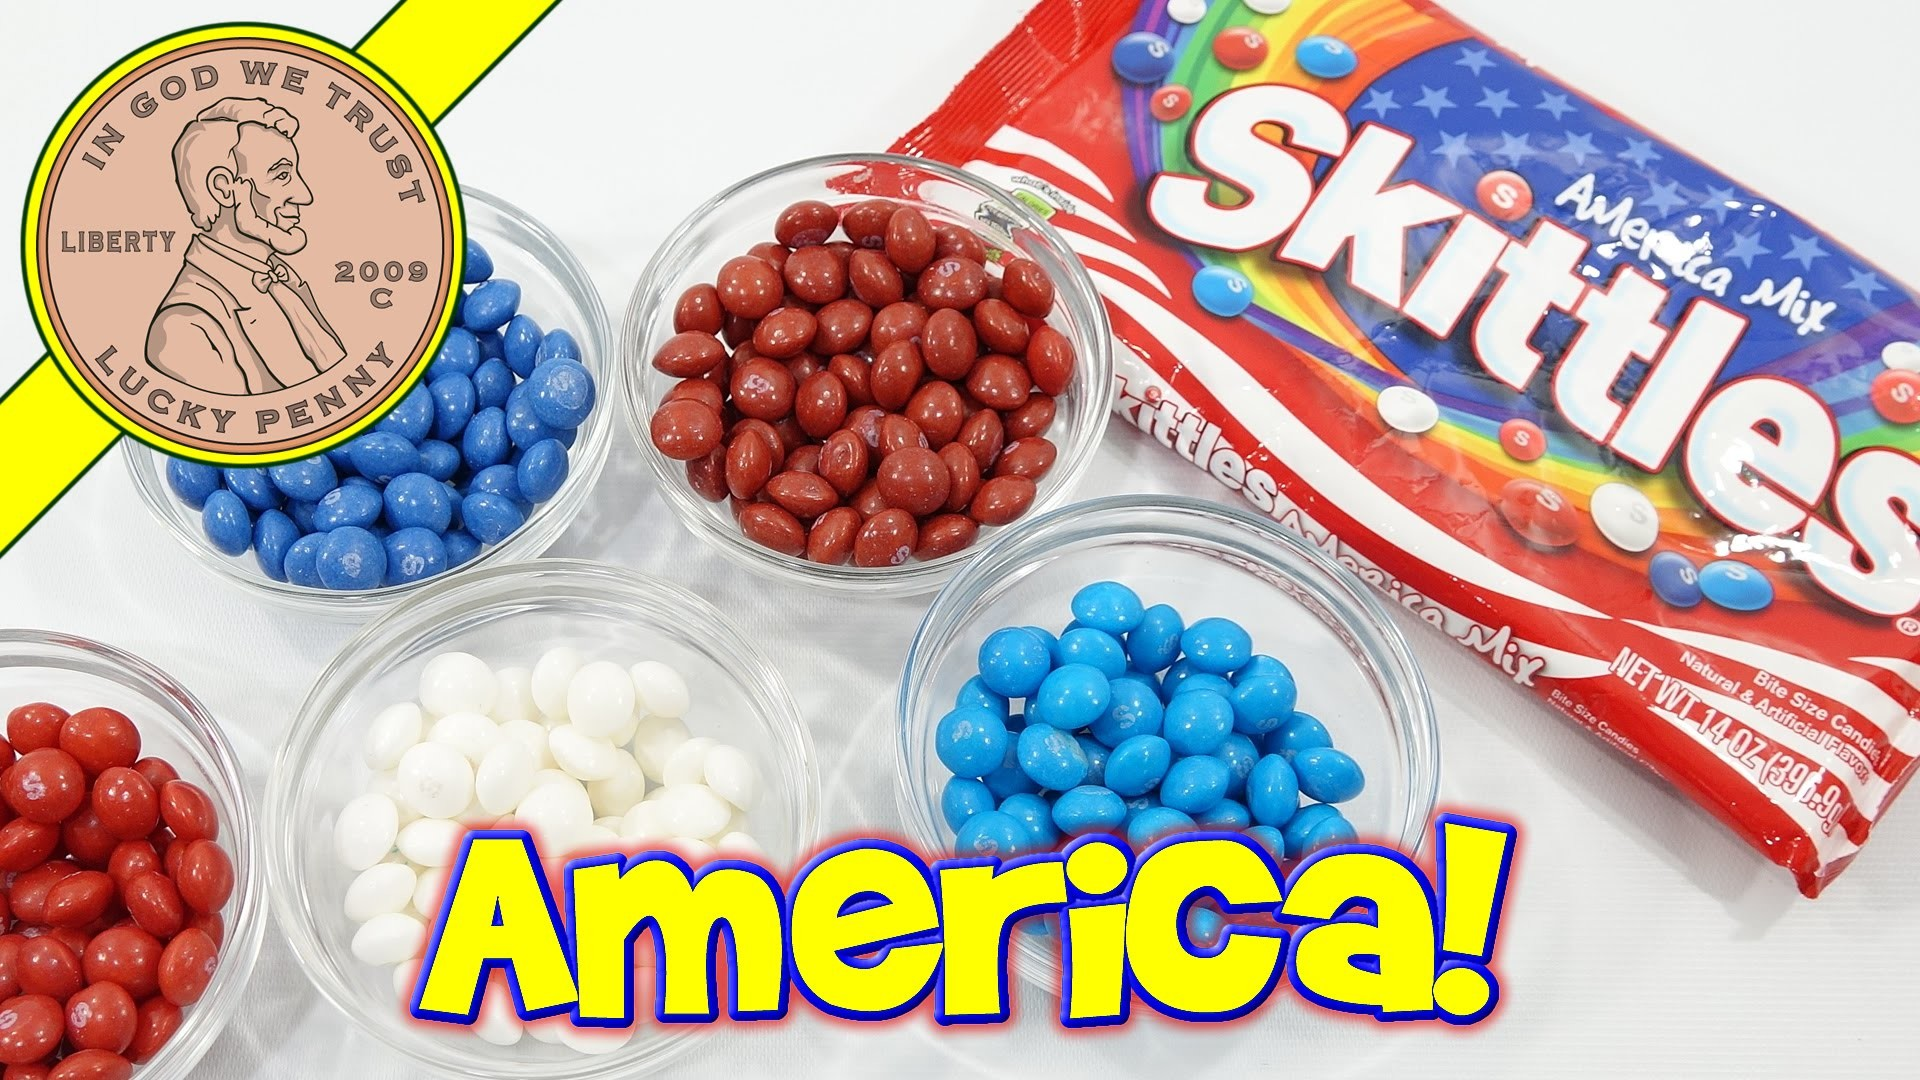 America Mix Skittles 4th Of July Red White & Blue Candy